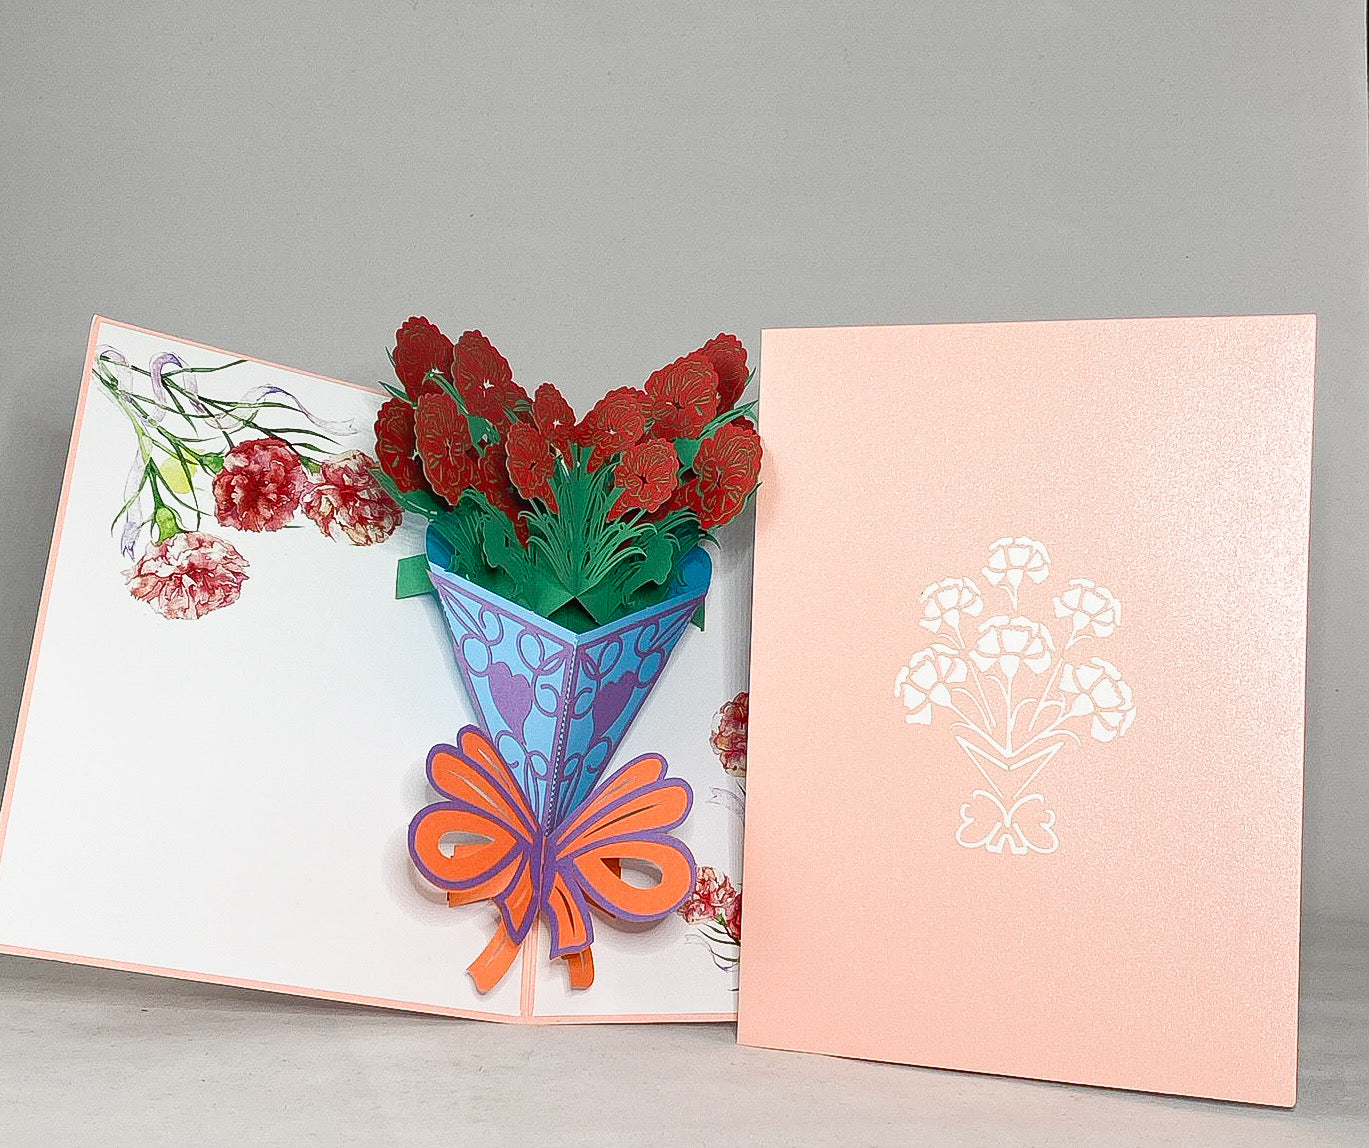 Tian's Gifts: Carnation Flower 'Pop Up' Greetings Card